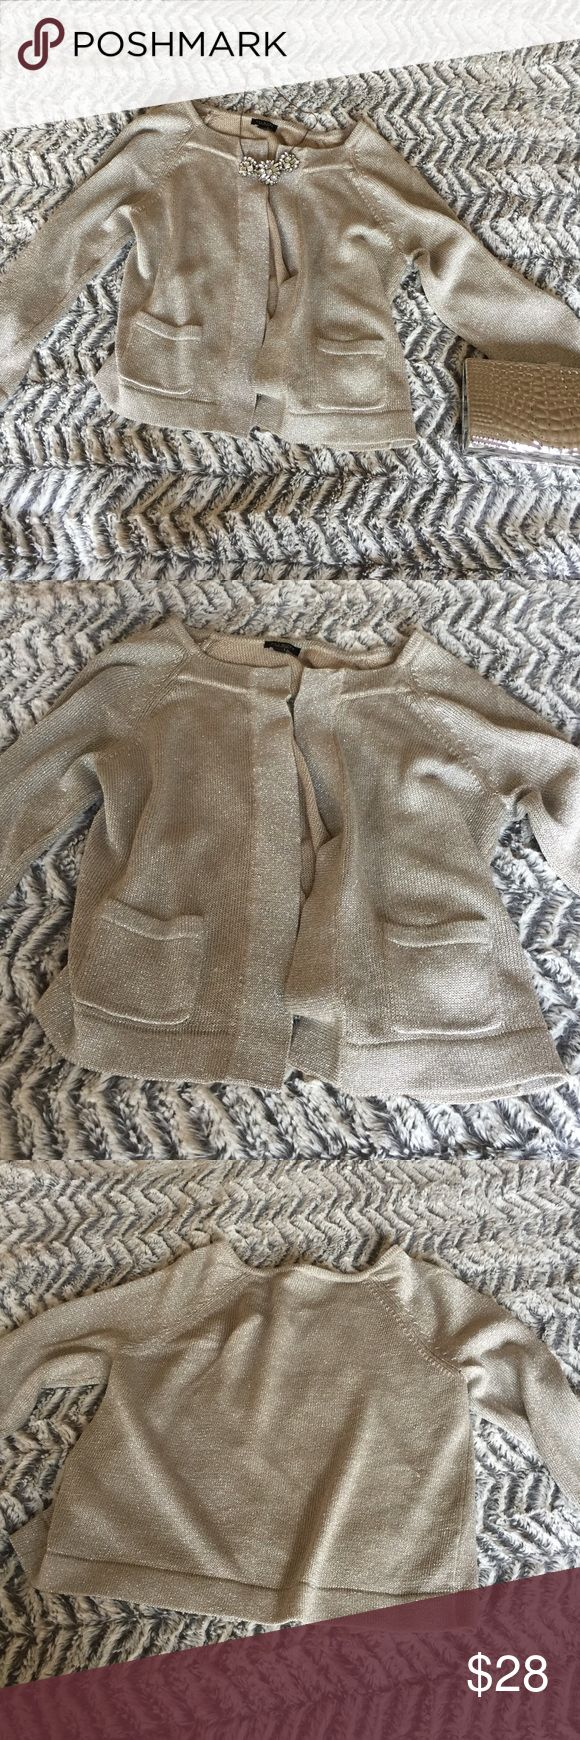 ⚡️SALE⚡️ Talbots Silver 3/4 Sleeve Cardigan Talbots 3/4 Sleeve Sweater with hook and eye around collar. Excellent condition. Perfect for evenings/ weddings- sparkly silver fabric will keep you warm and stylish!💰SAVE 10%- Bundle w other items from my closet! ✅Reasonable offers considered- Make me an offer! 🔝Top Rated Seller- 5 Star Average Reviews. 📦Ships same or next day! Talbots Sweaters Cardigans